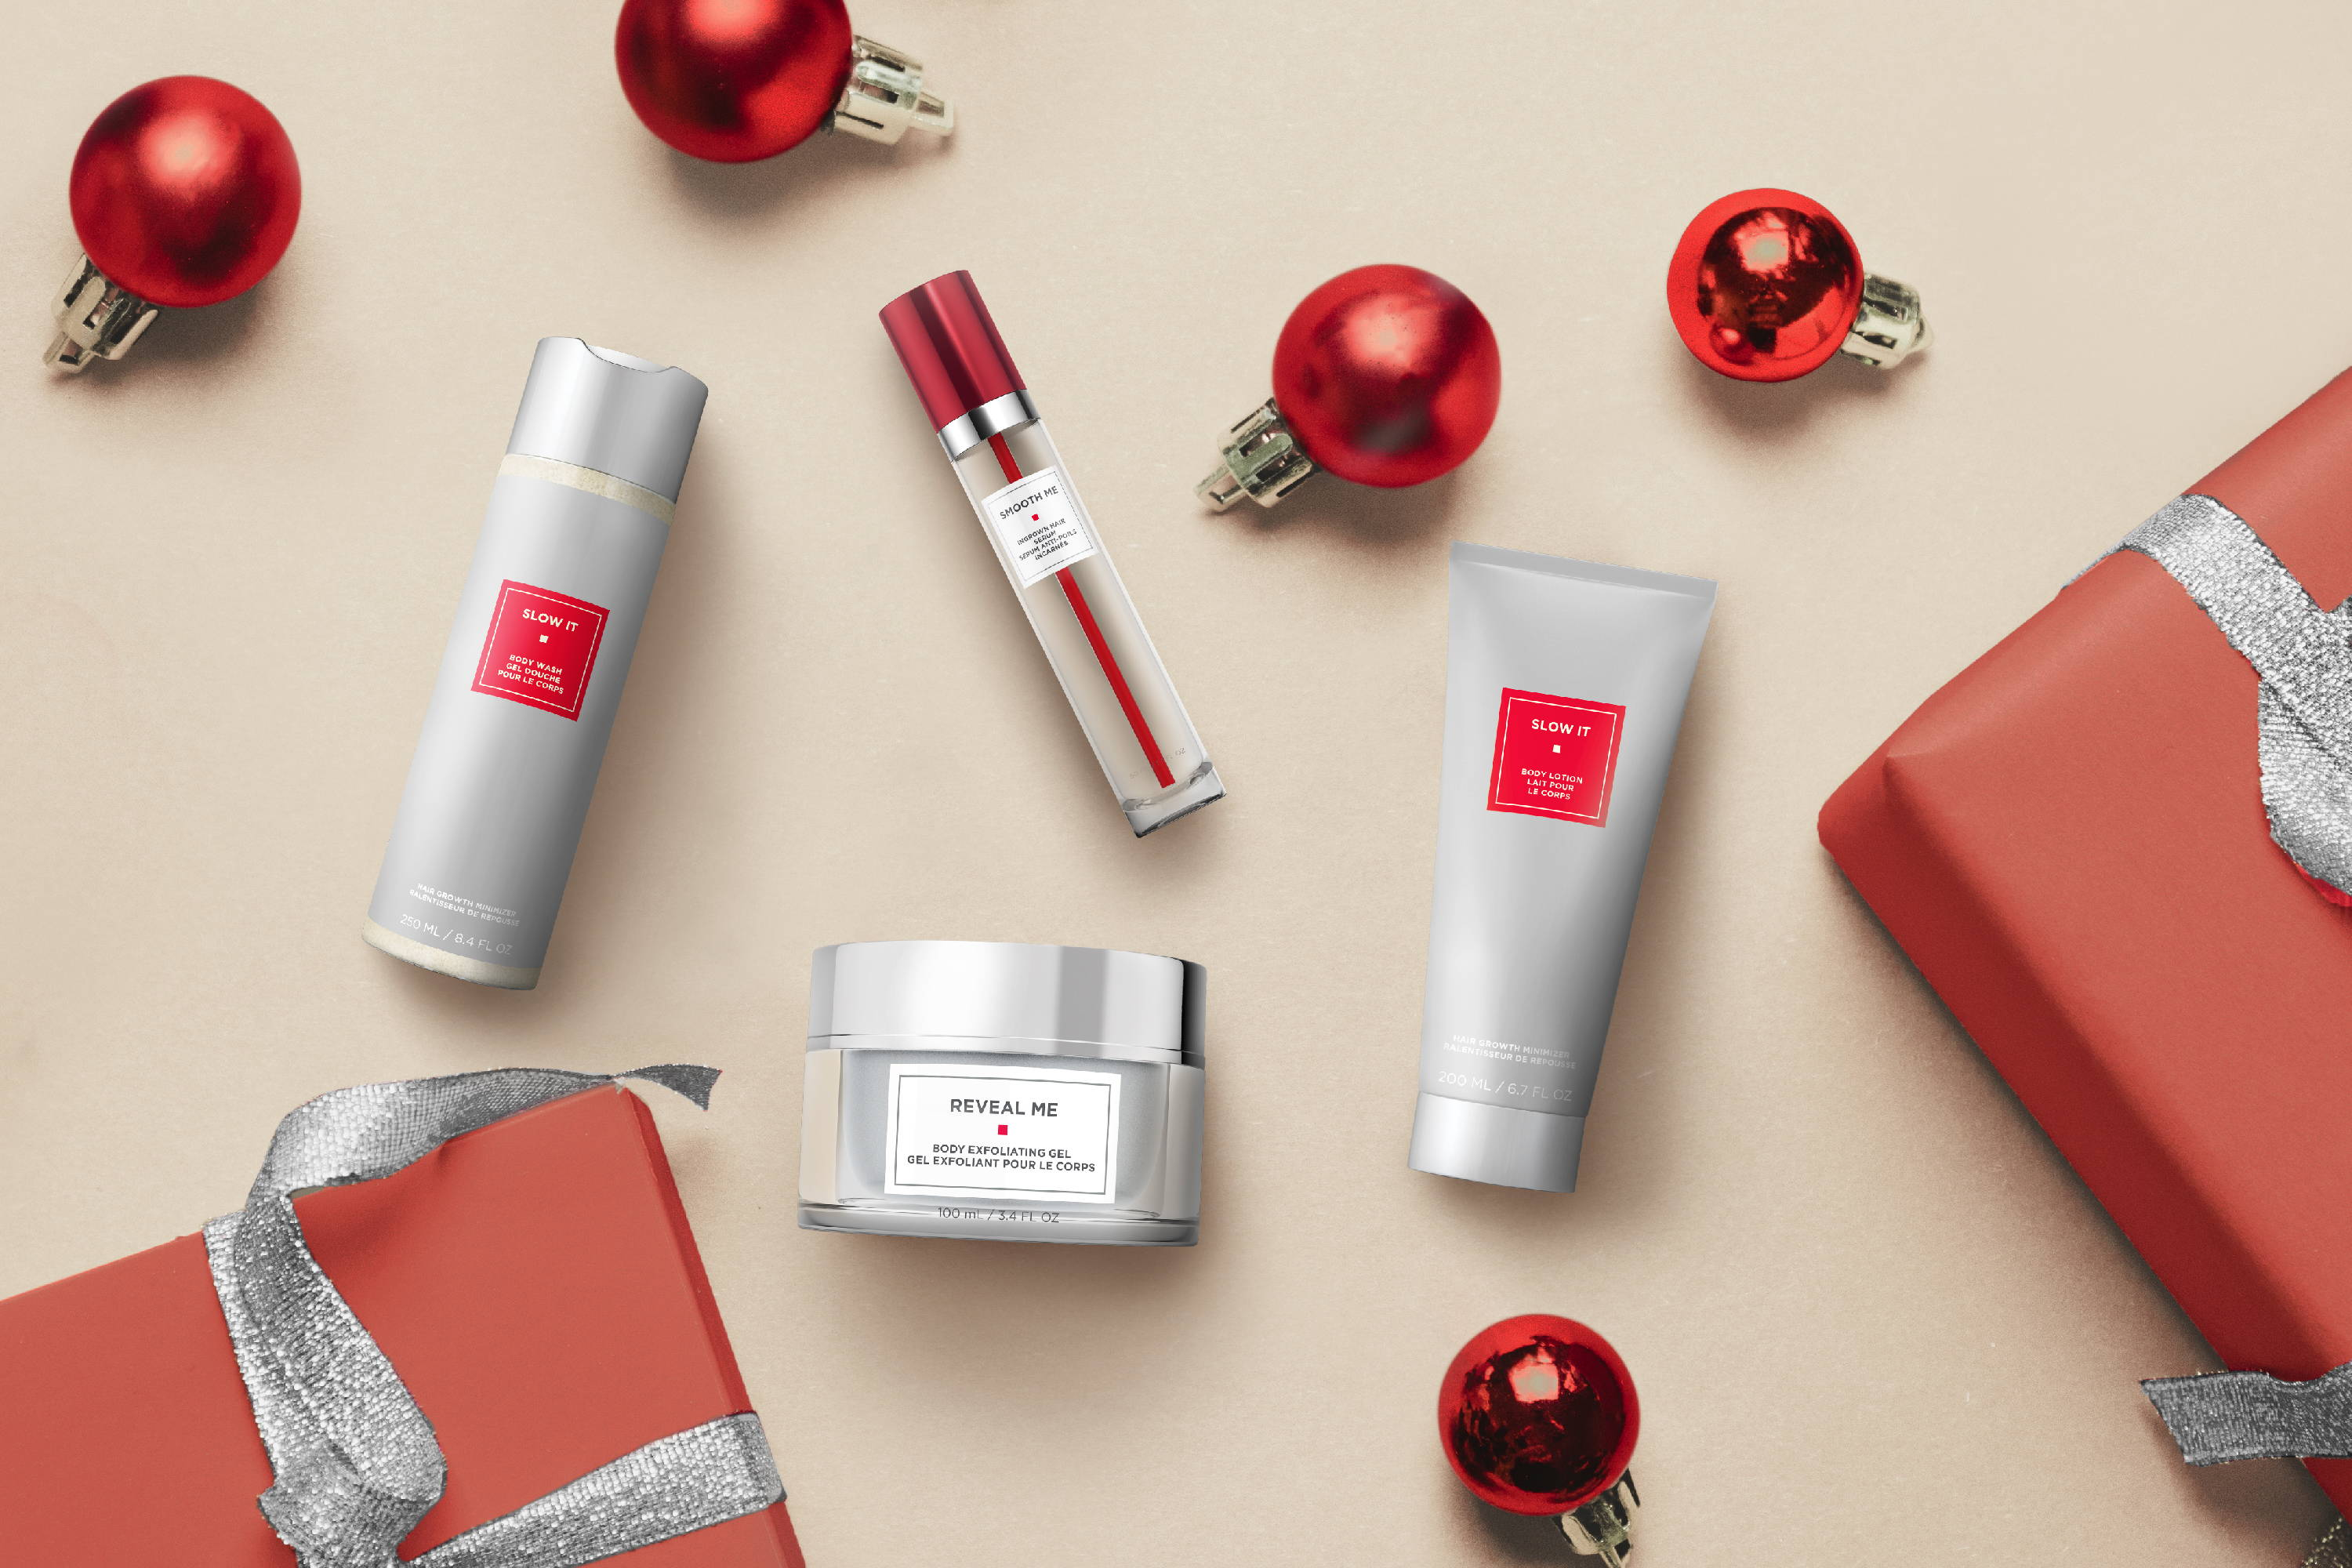 Strut Smoothly® Skincare products for ingrown hairs, exfoliate, and lotion